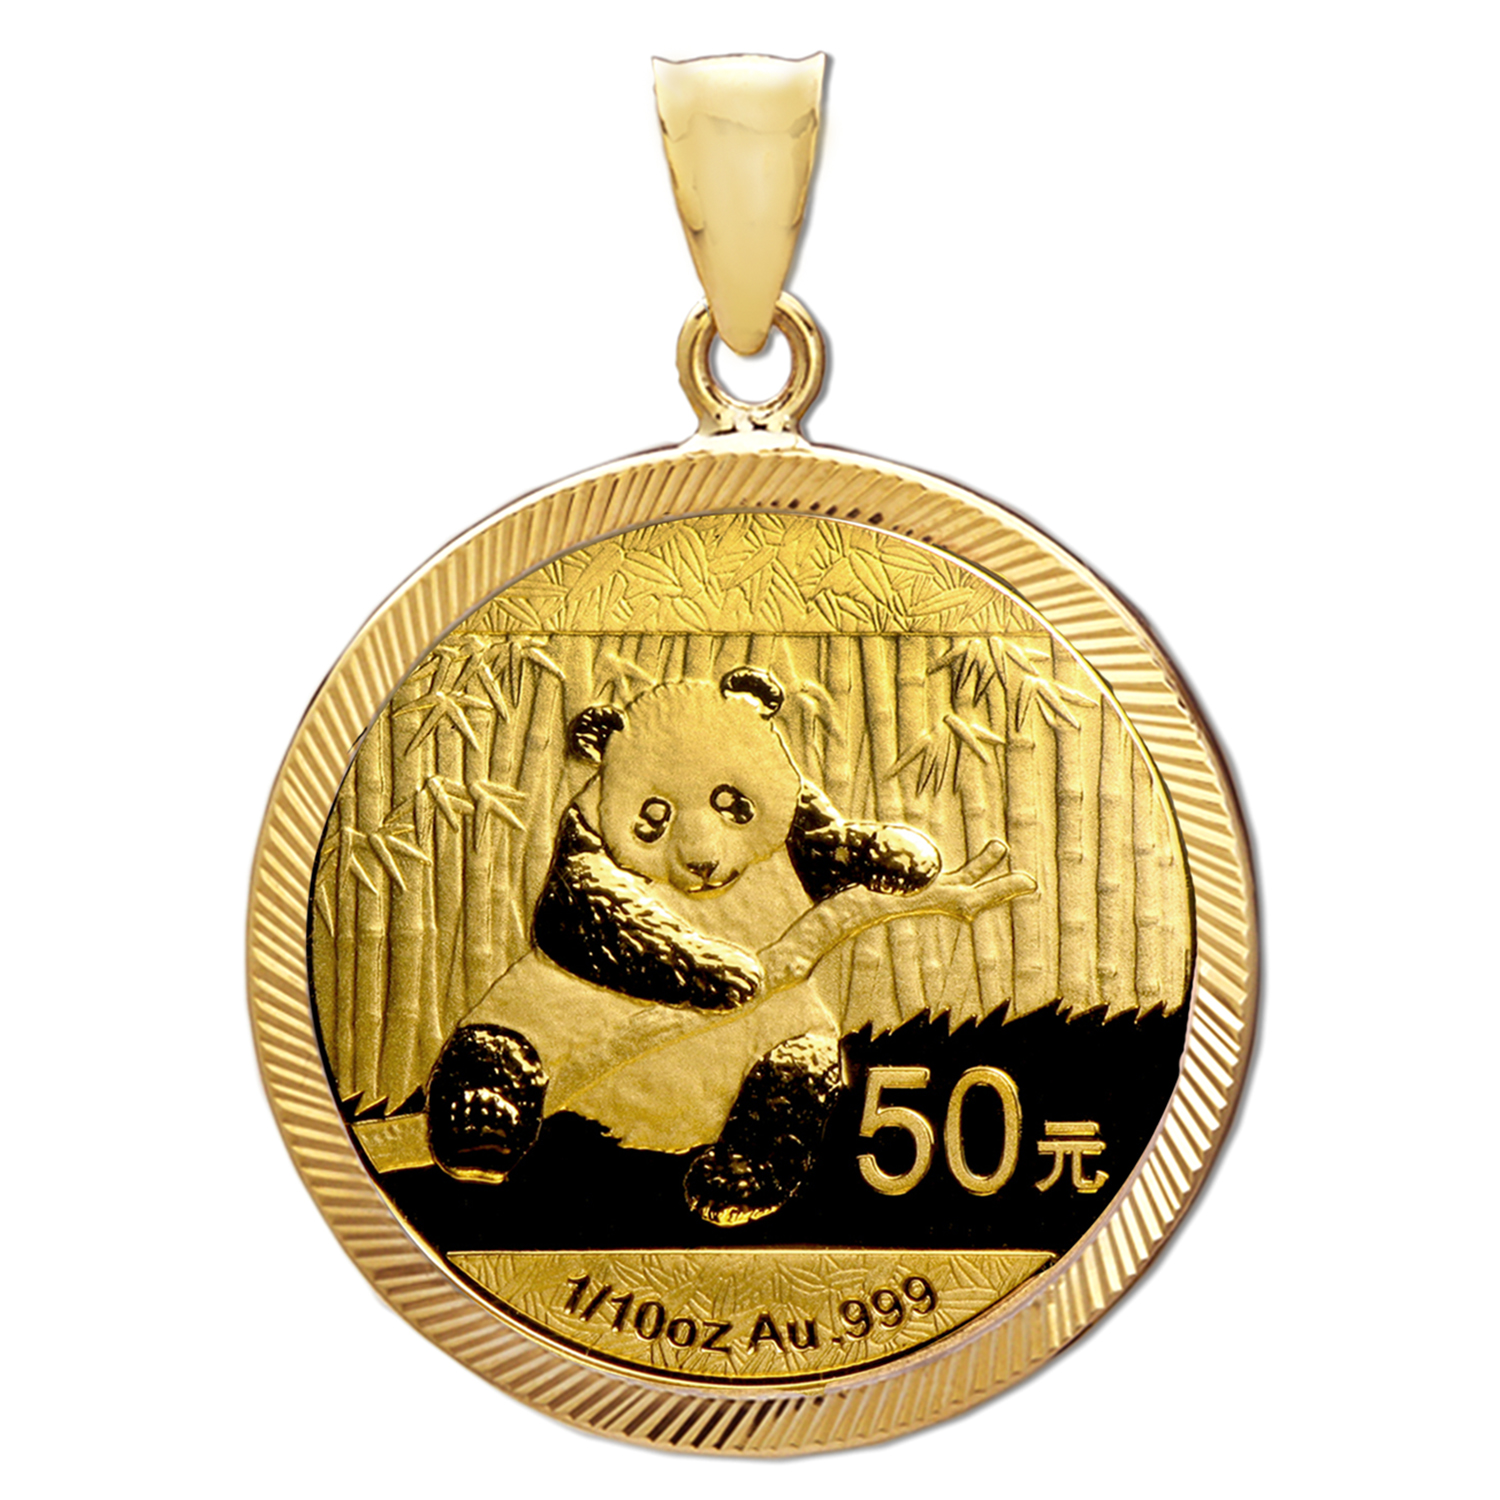 2014 1/10 oz Gold Panda Pendant (Diamond-Prong Bezel)